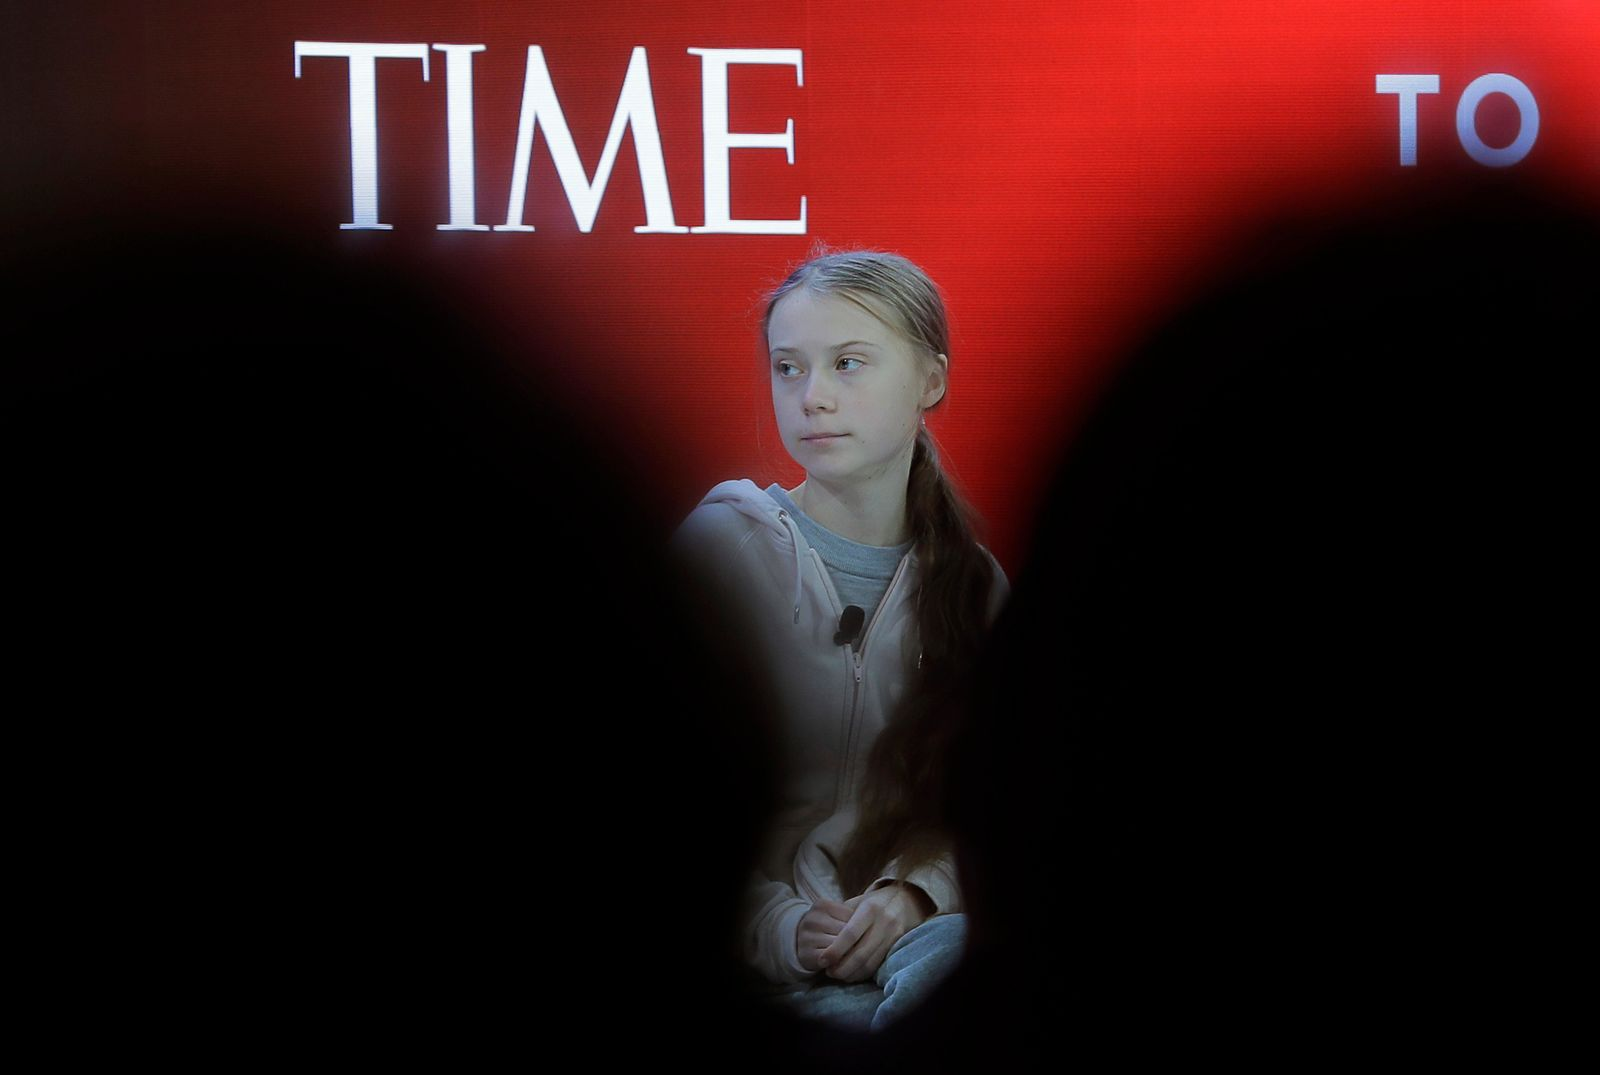 Swedish environmental activist Greta Thunberg takes her seat prior to the opening session of the World Economic Forum in Davos, Switzerland, Tuesday, Jan. 21, 202(AP Photo/Markus Schreiber)